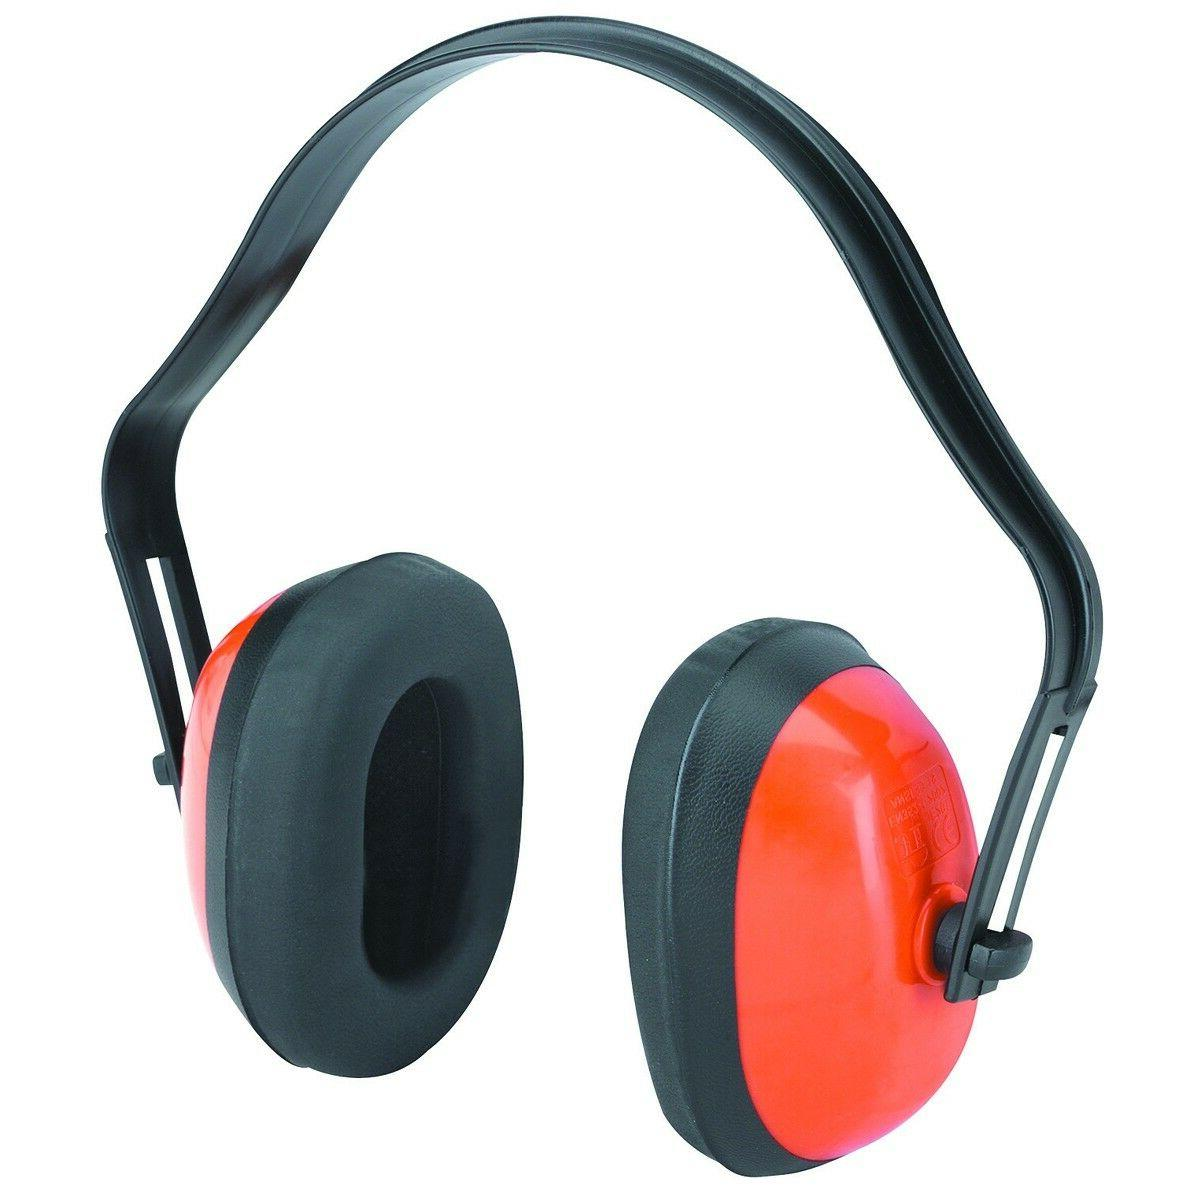 new industrial ear muffs protection shooting range